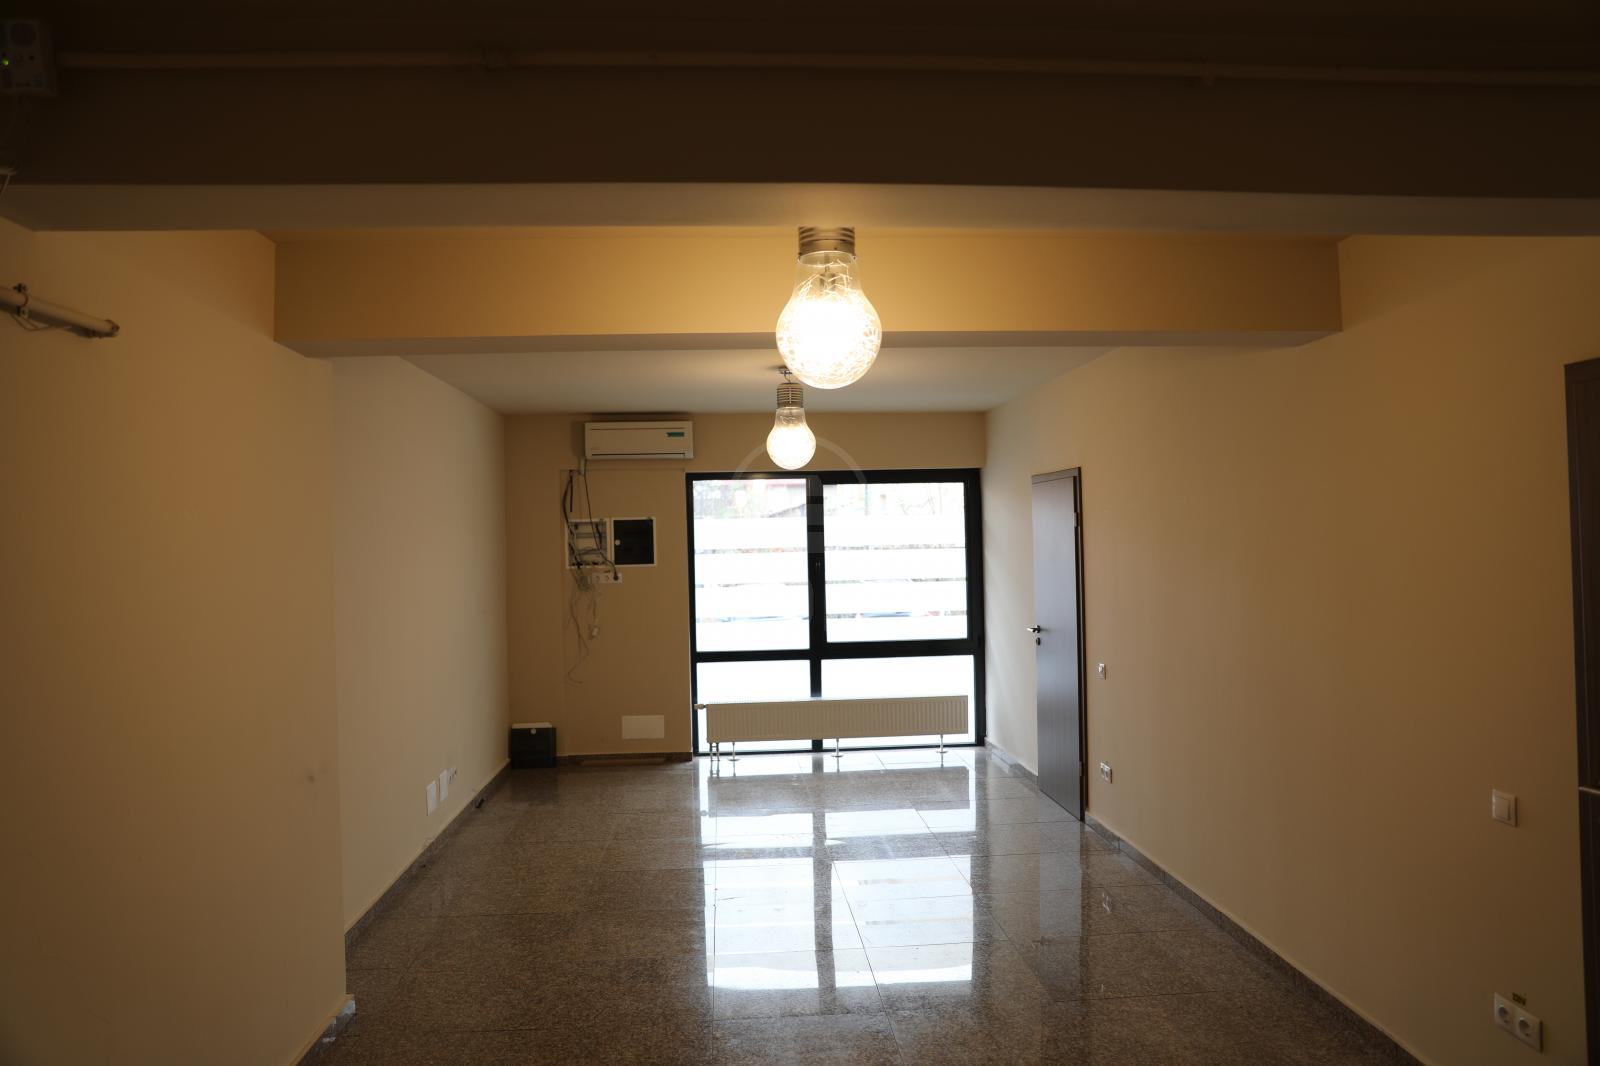 Commercial space for sale 3 rooms, SCCJ297529-11